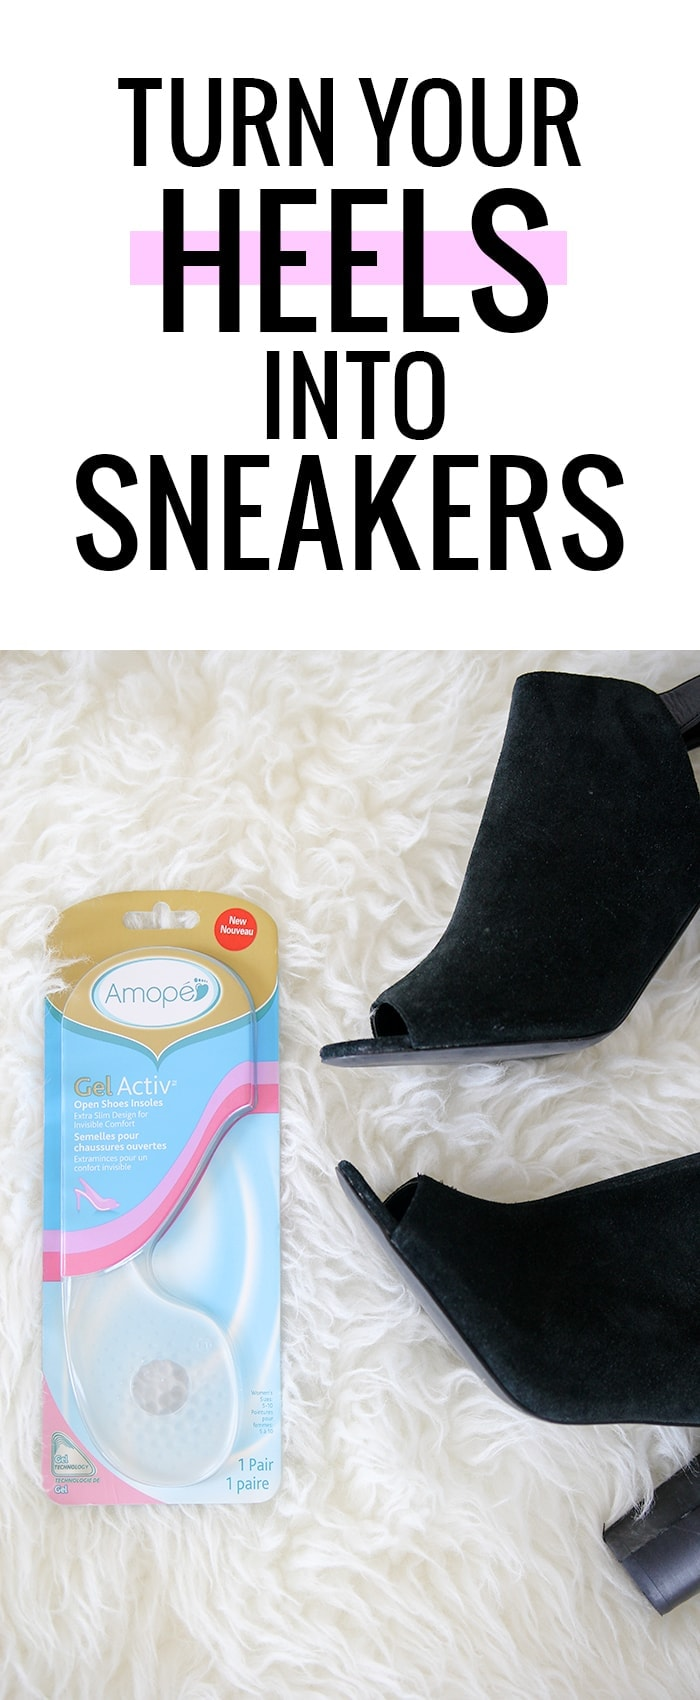 Turn your heels into sneakers with Ampoe Gel Activ inserts!